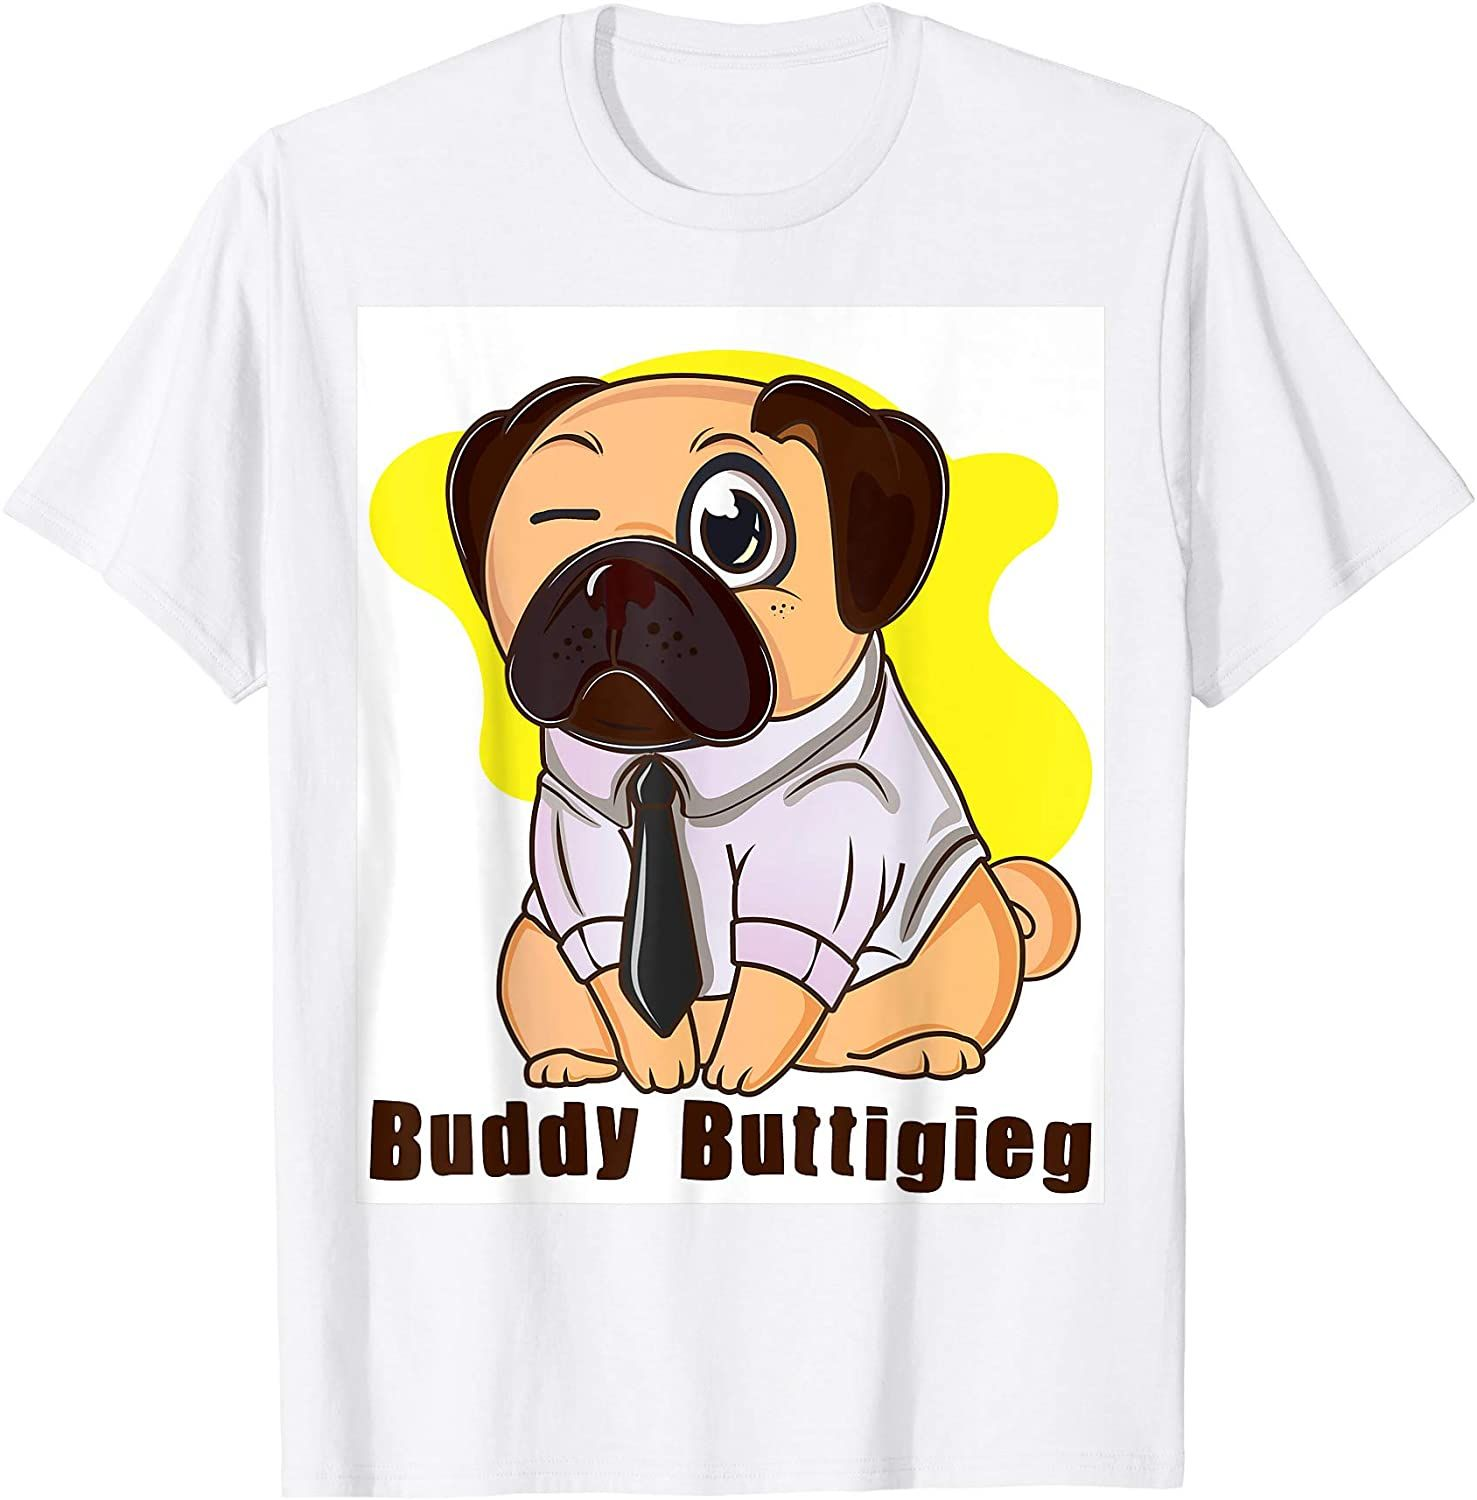 Buddy Buttigieg Cute Pete S One Eyed Dog T Shirt In 2020 Dog Tshirt T Shirt T Shirts For Women